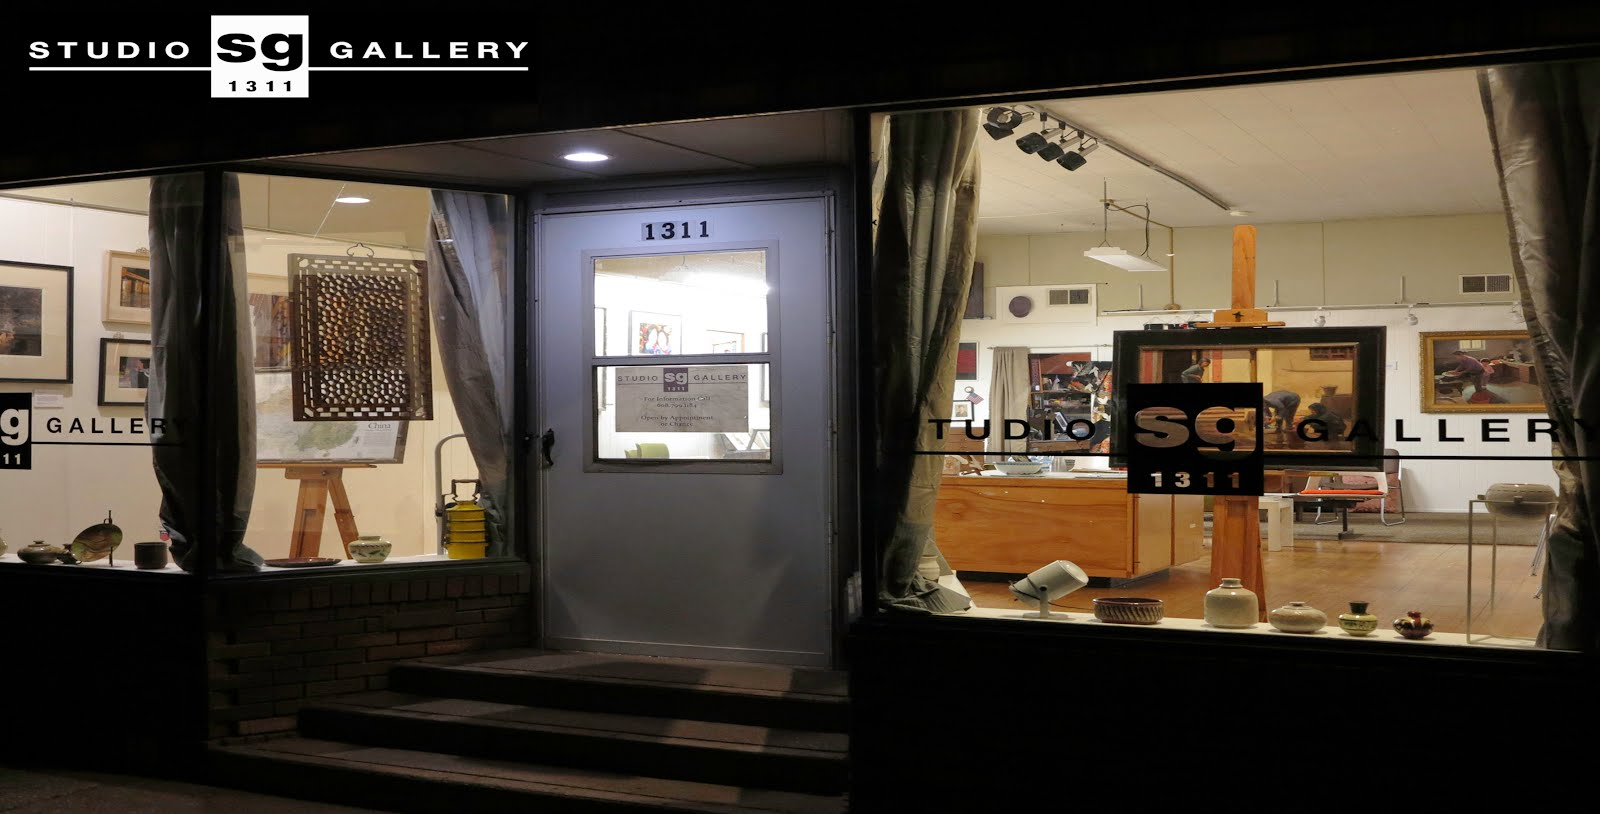 Studio Gallery 1311, LLC  (SG1311)